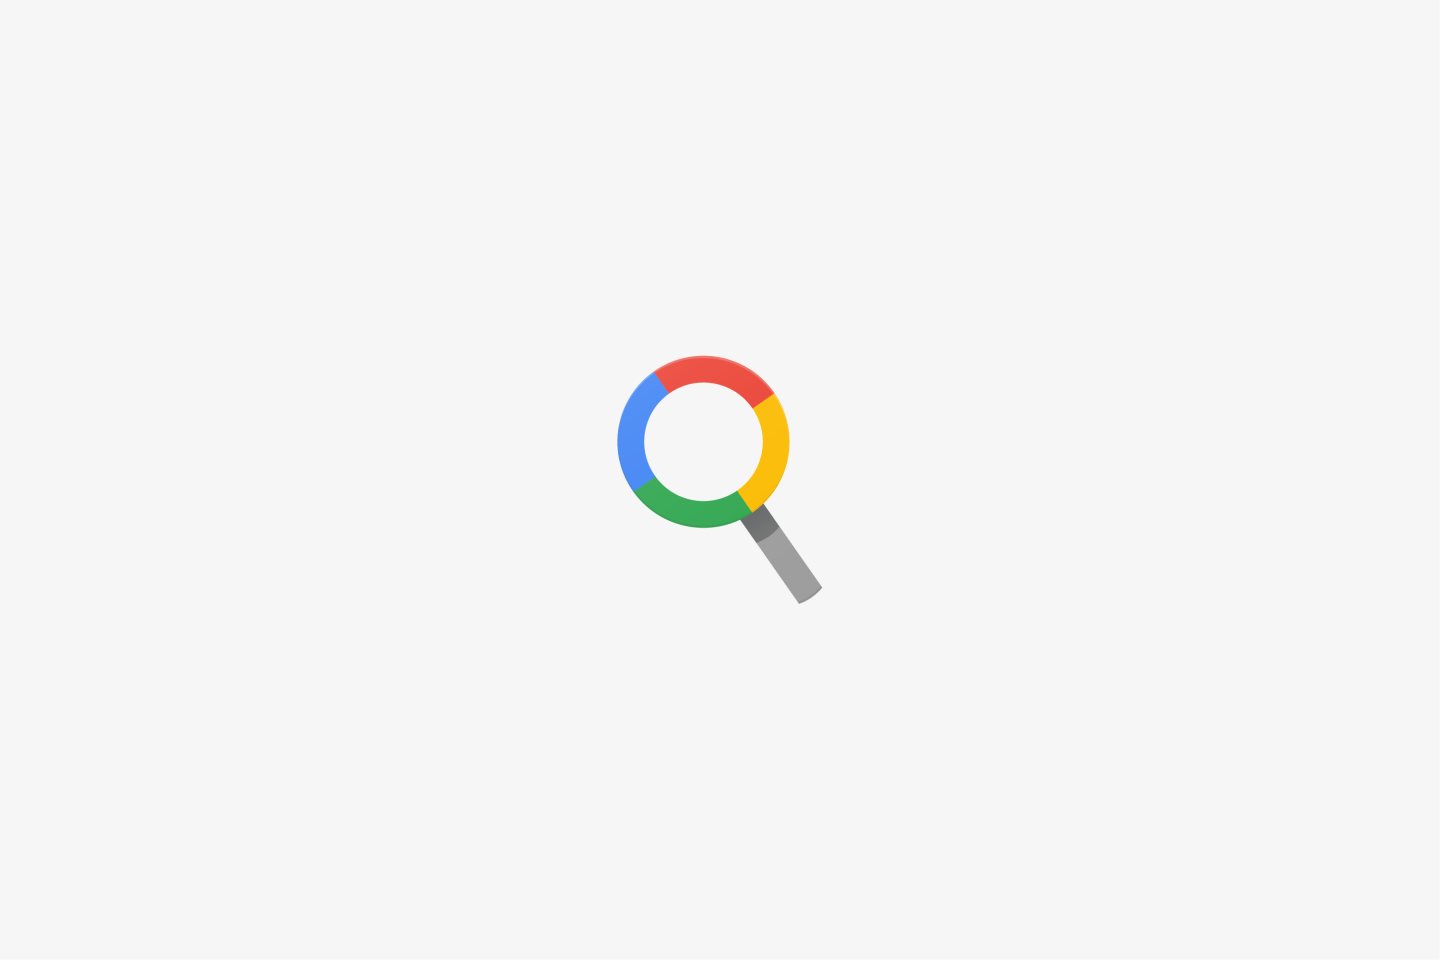 Google Material Design Logo - Spotlight On